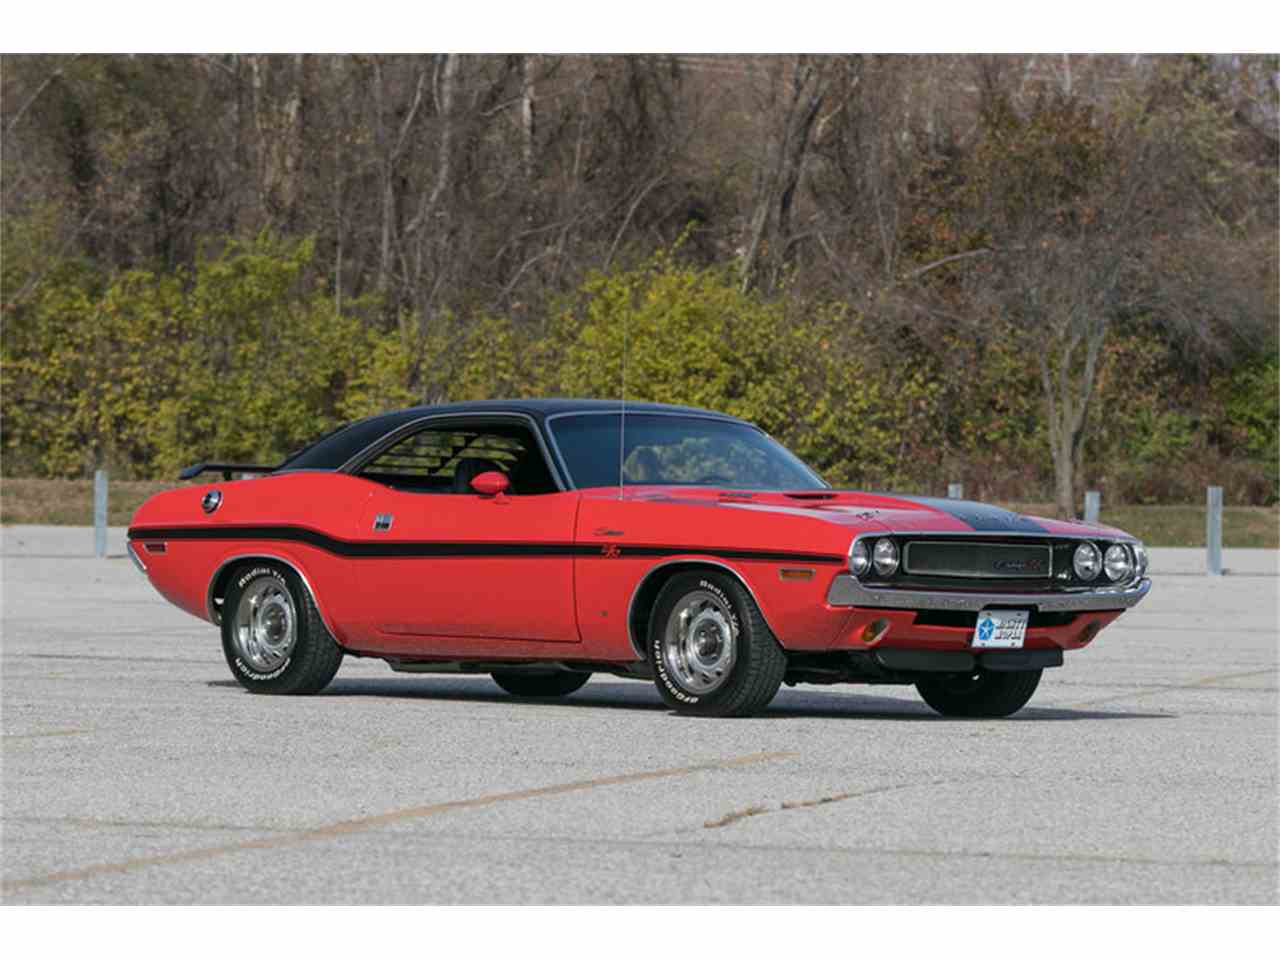 Large Picture of 1970 Dodge Challenger R/T located in St. Charles Missouri - $89,995.00 Offered by Fast Lane Classic Cars Inc. - MF41